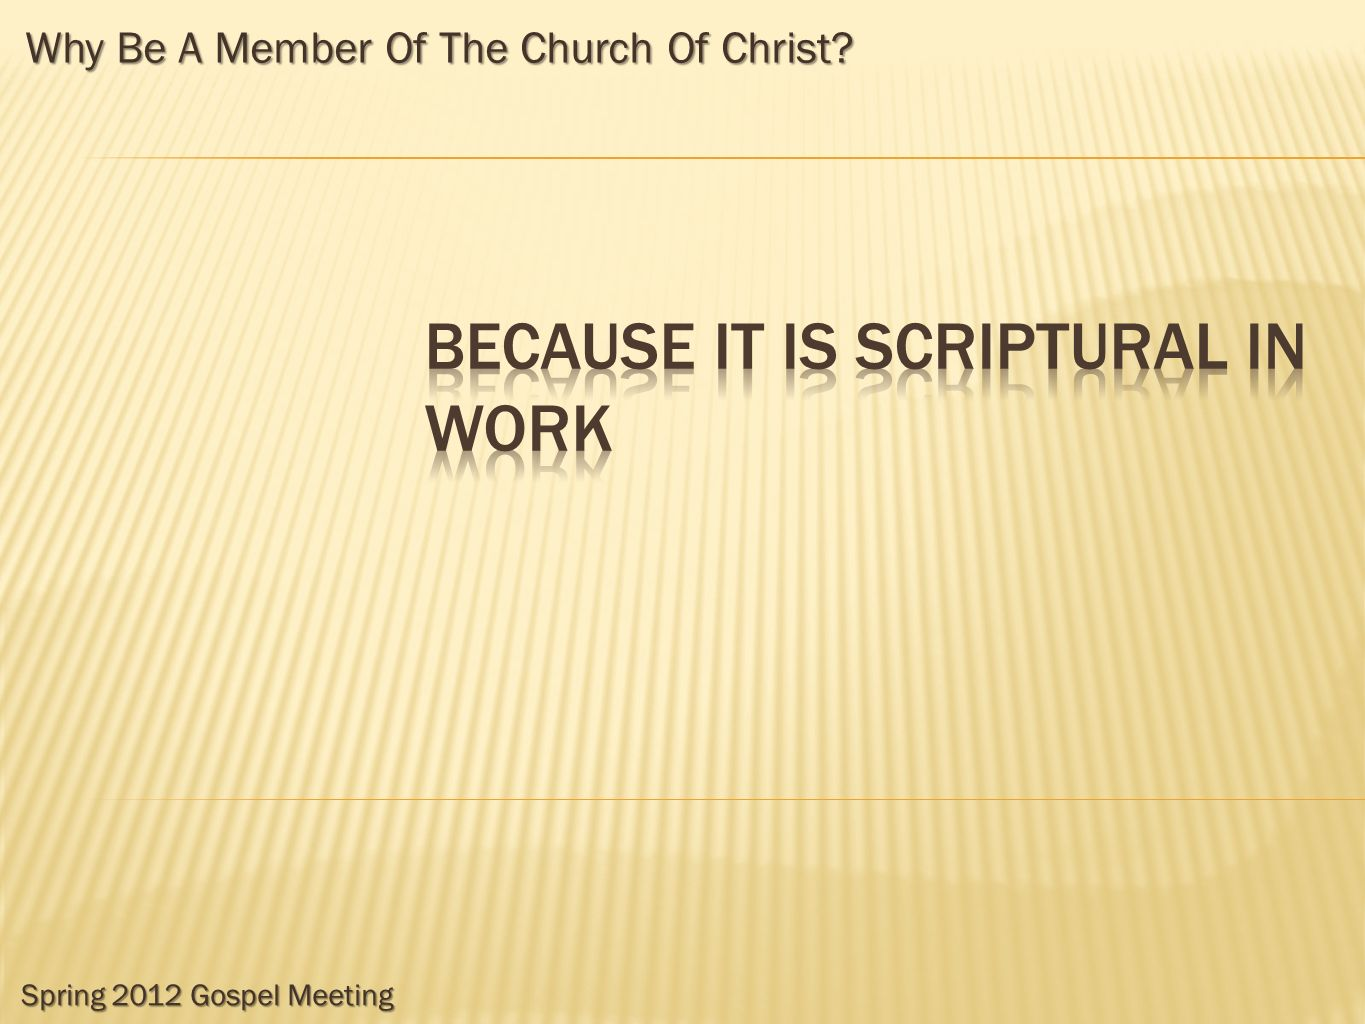 Because it is scriptural in work